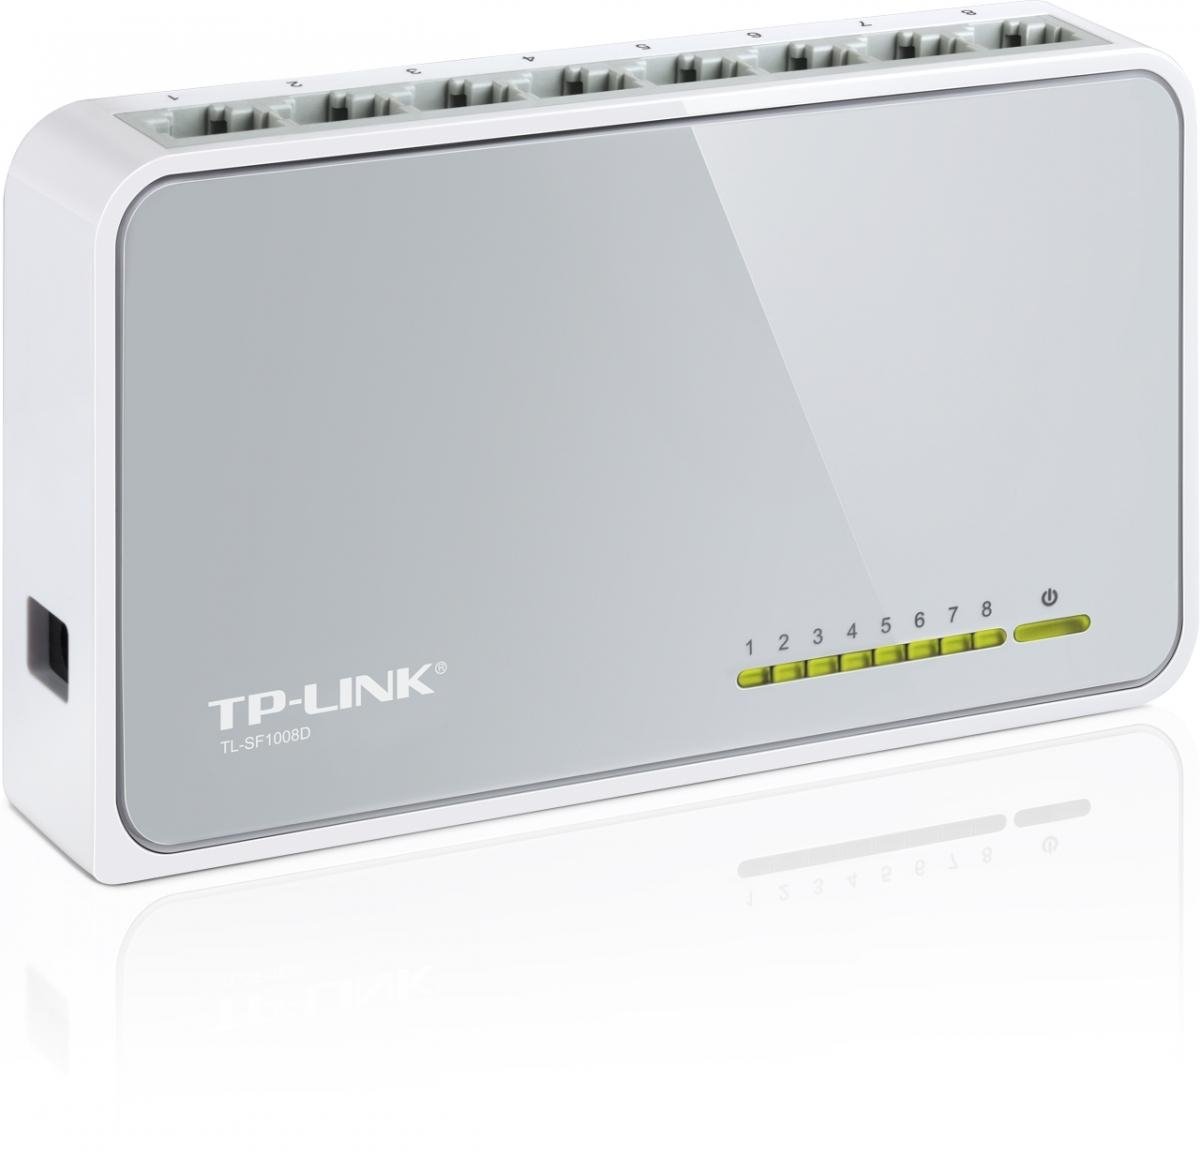 mini switch TP-LINK 8 x 10/100 Mbs + 1 x uplink TL-SF1008D